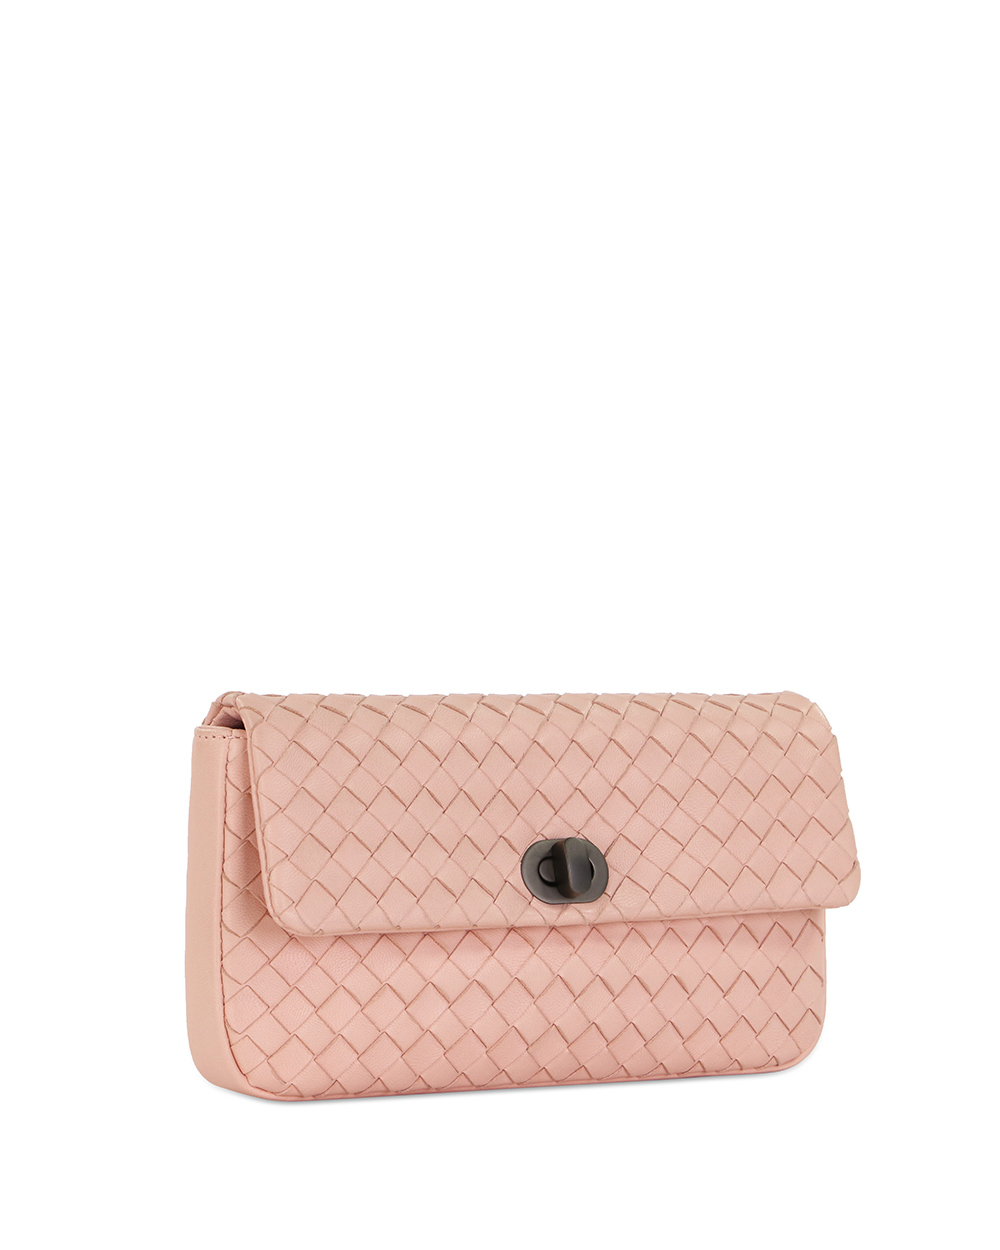 Woven Lamb Leather Clutch 2